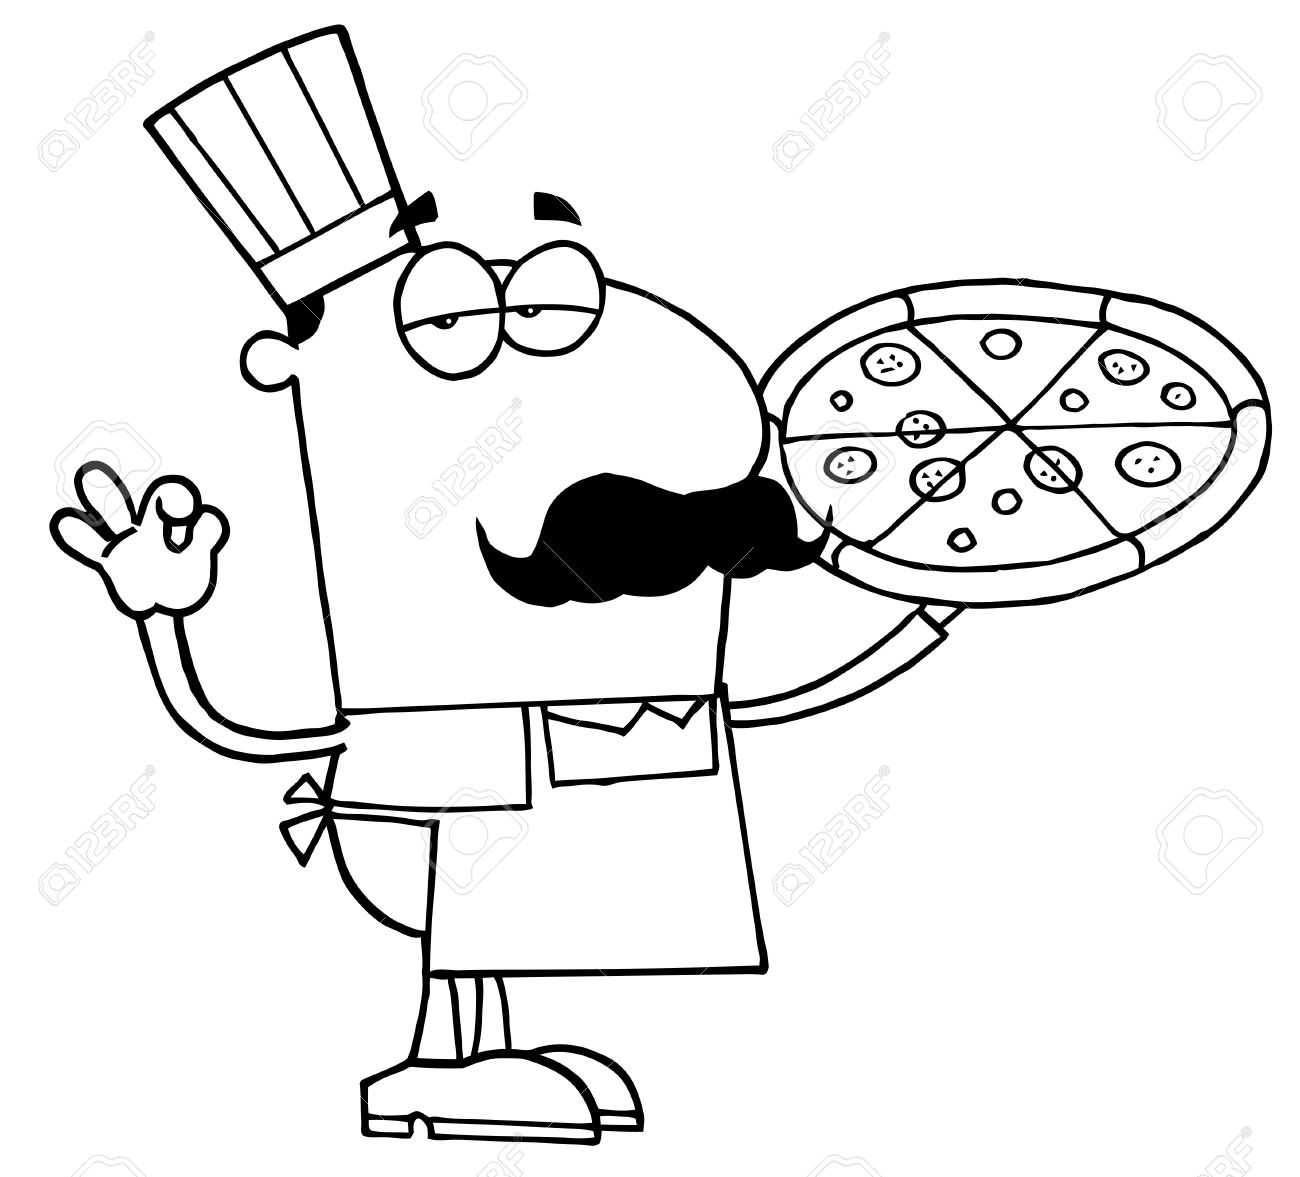 Clipart Illustration Of An Outlined Pizza Cook Royalty Free.